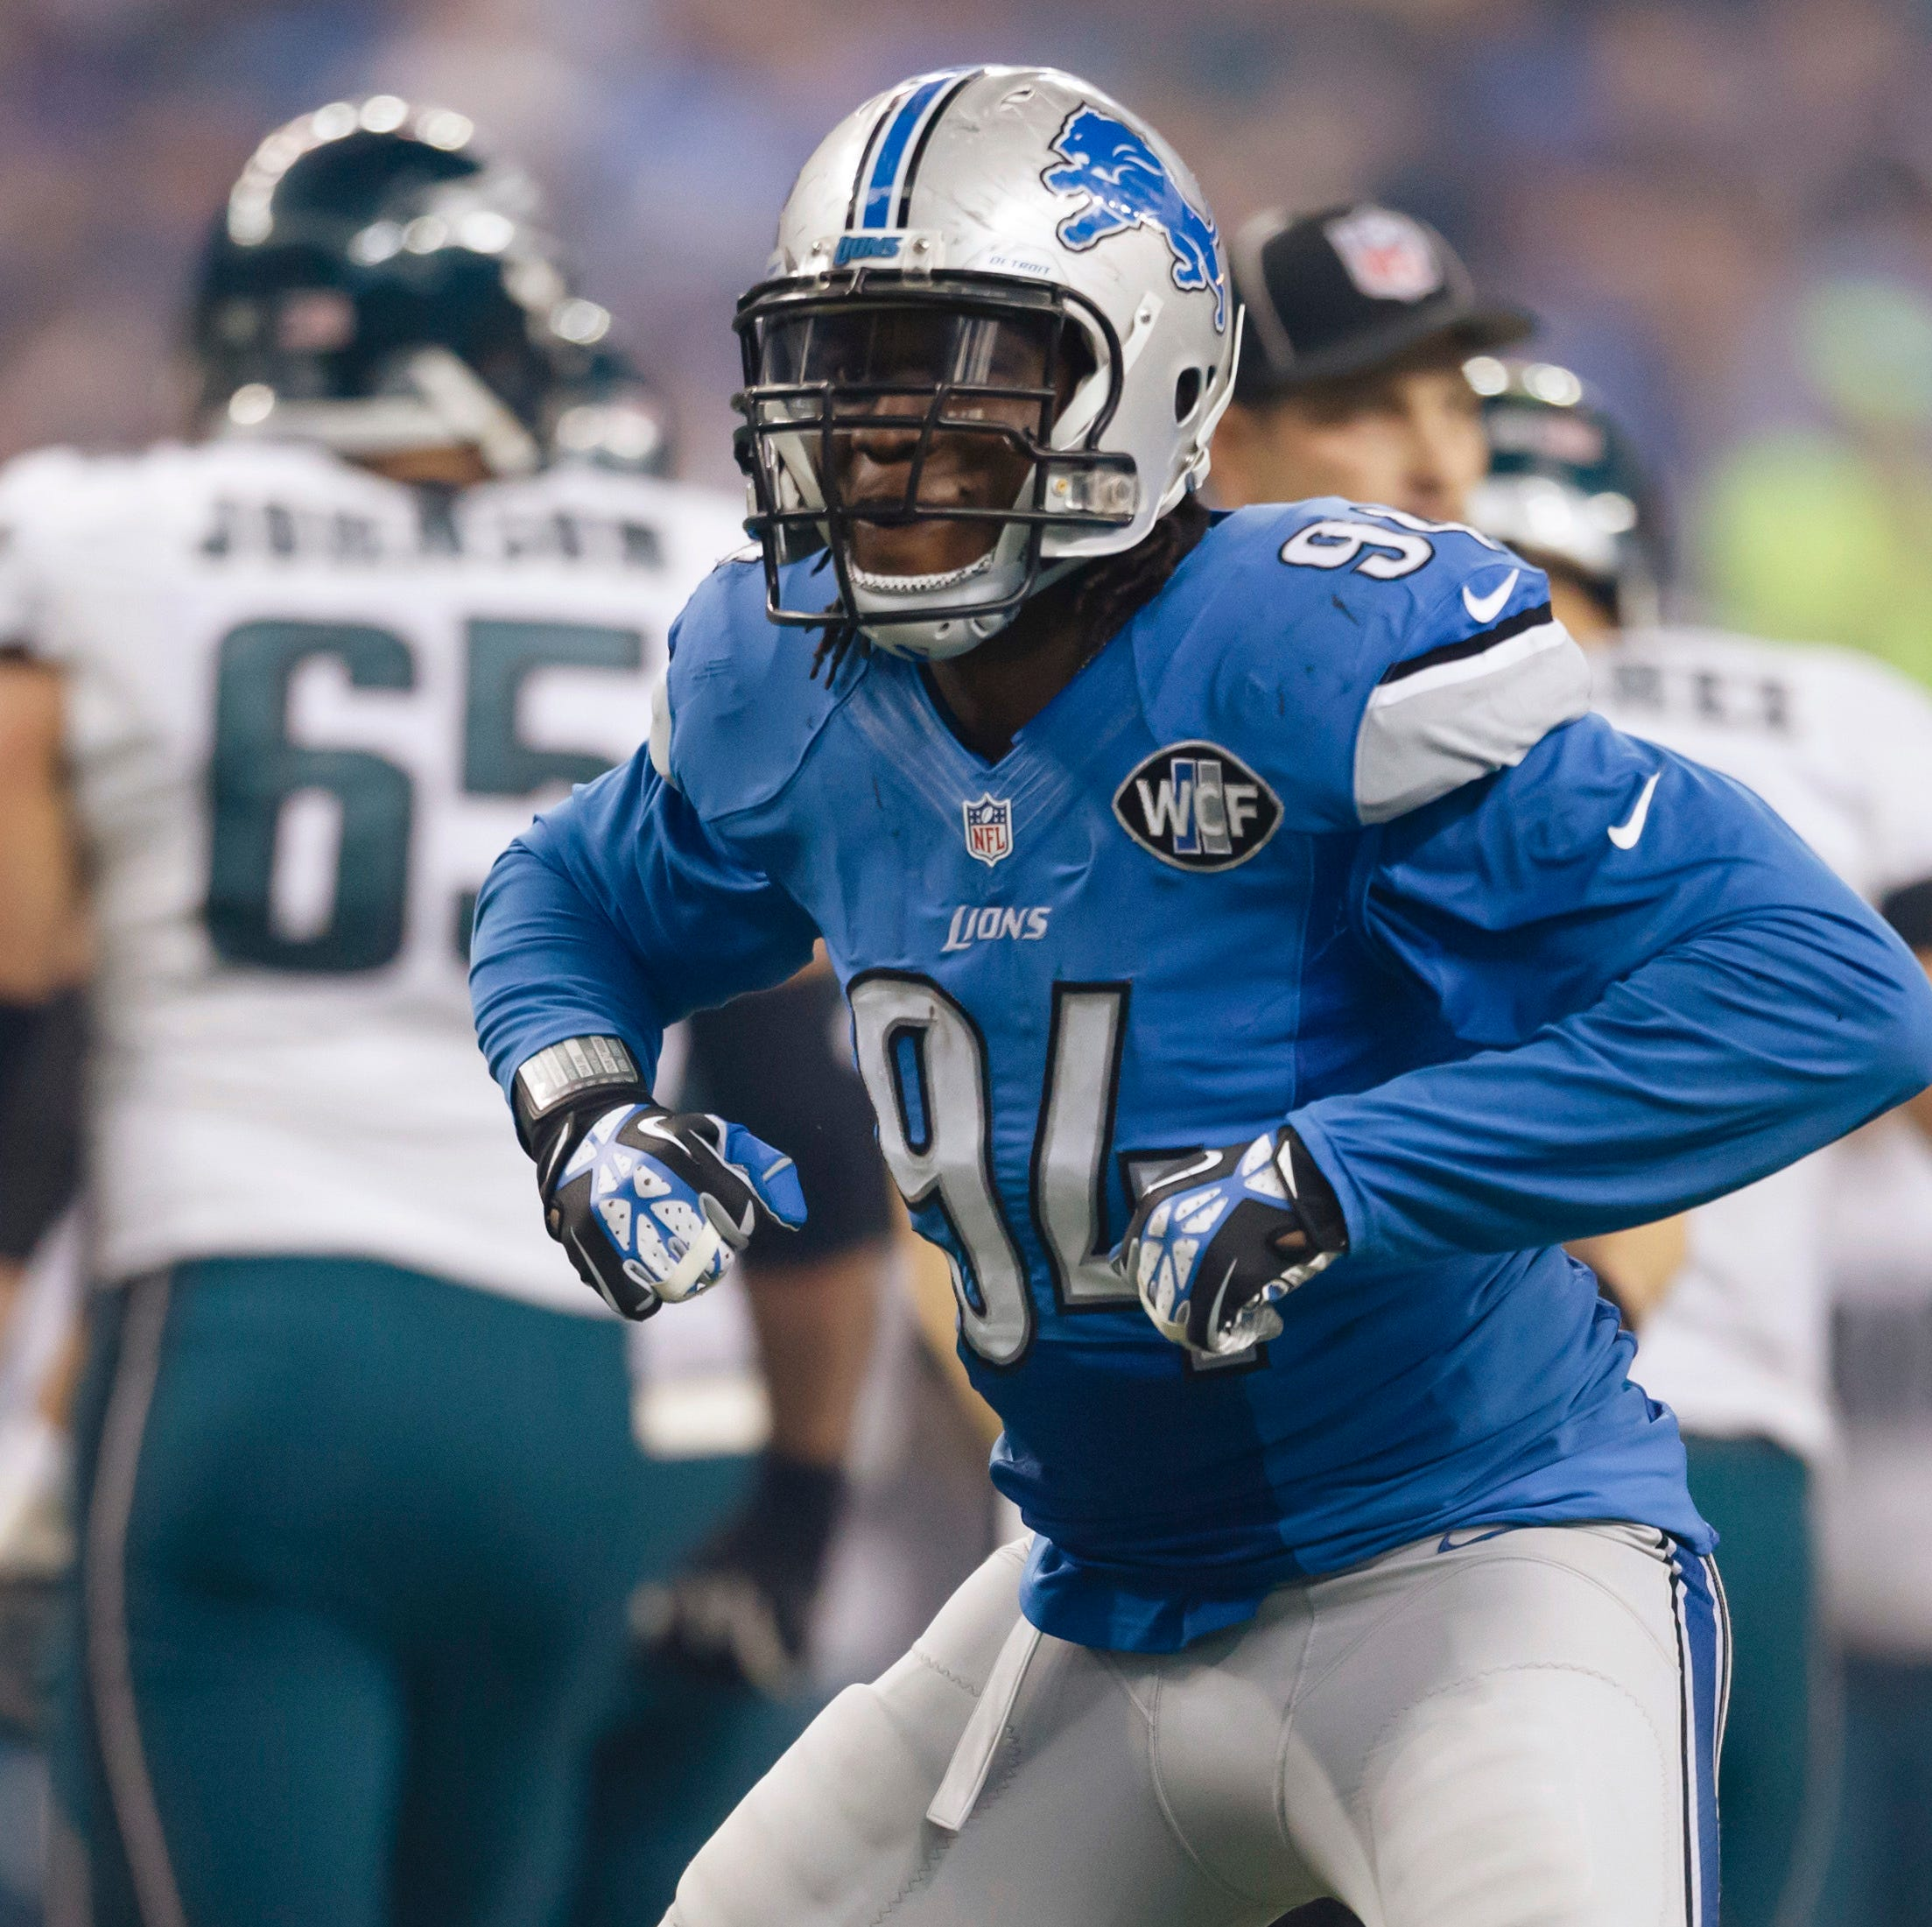 Buffalo Bills projected to sign former Lions defensive end Ziggy Ansah by CBS Sports